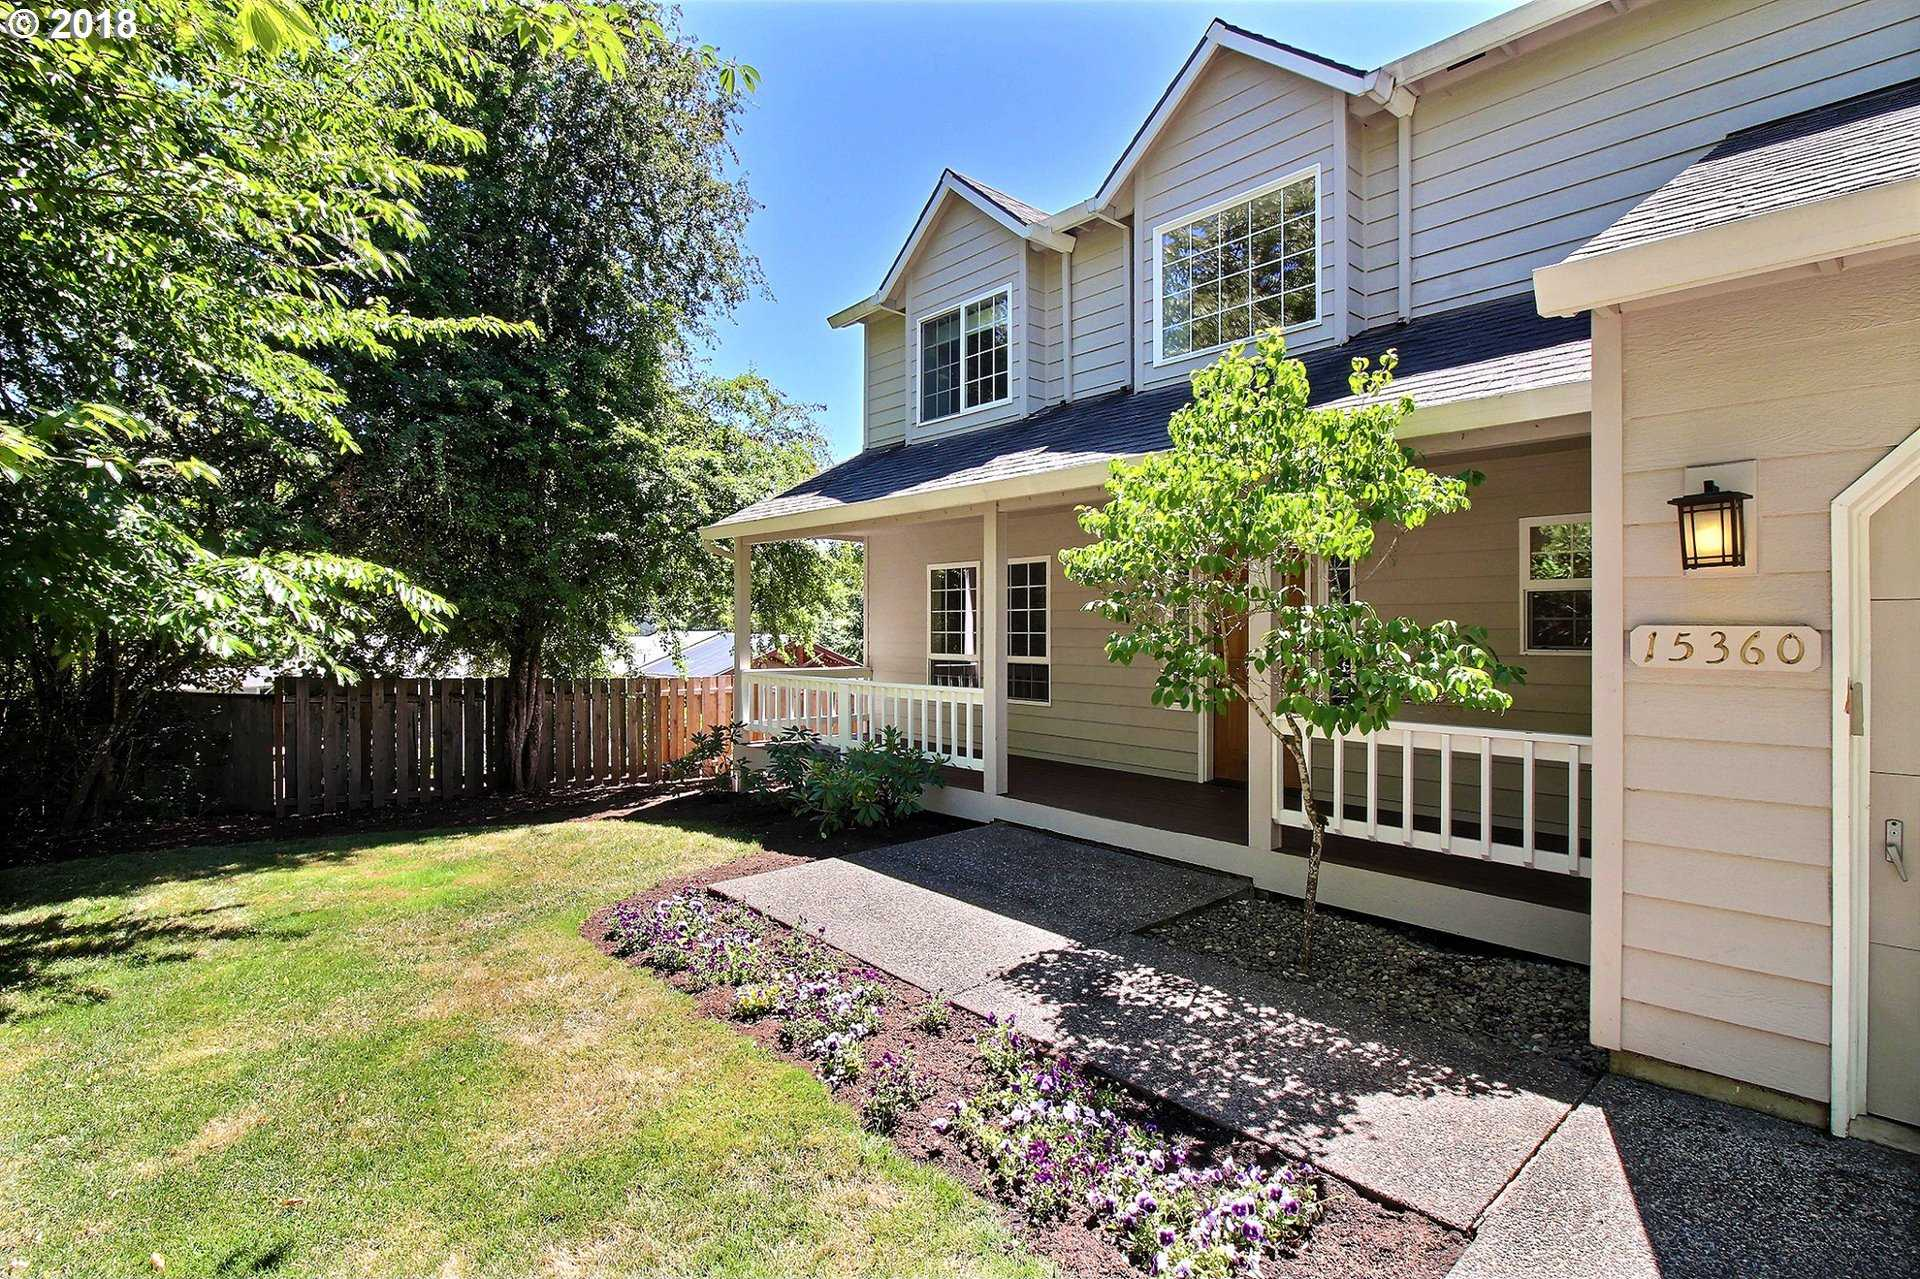 $445,000 - 4Br/3Ba -  for Sale in Nehalem Wood, Beaverton